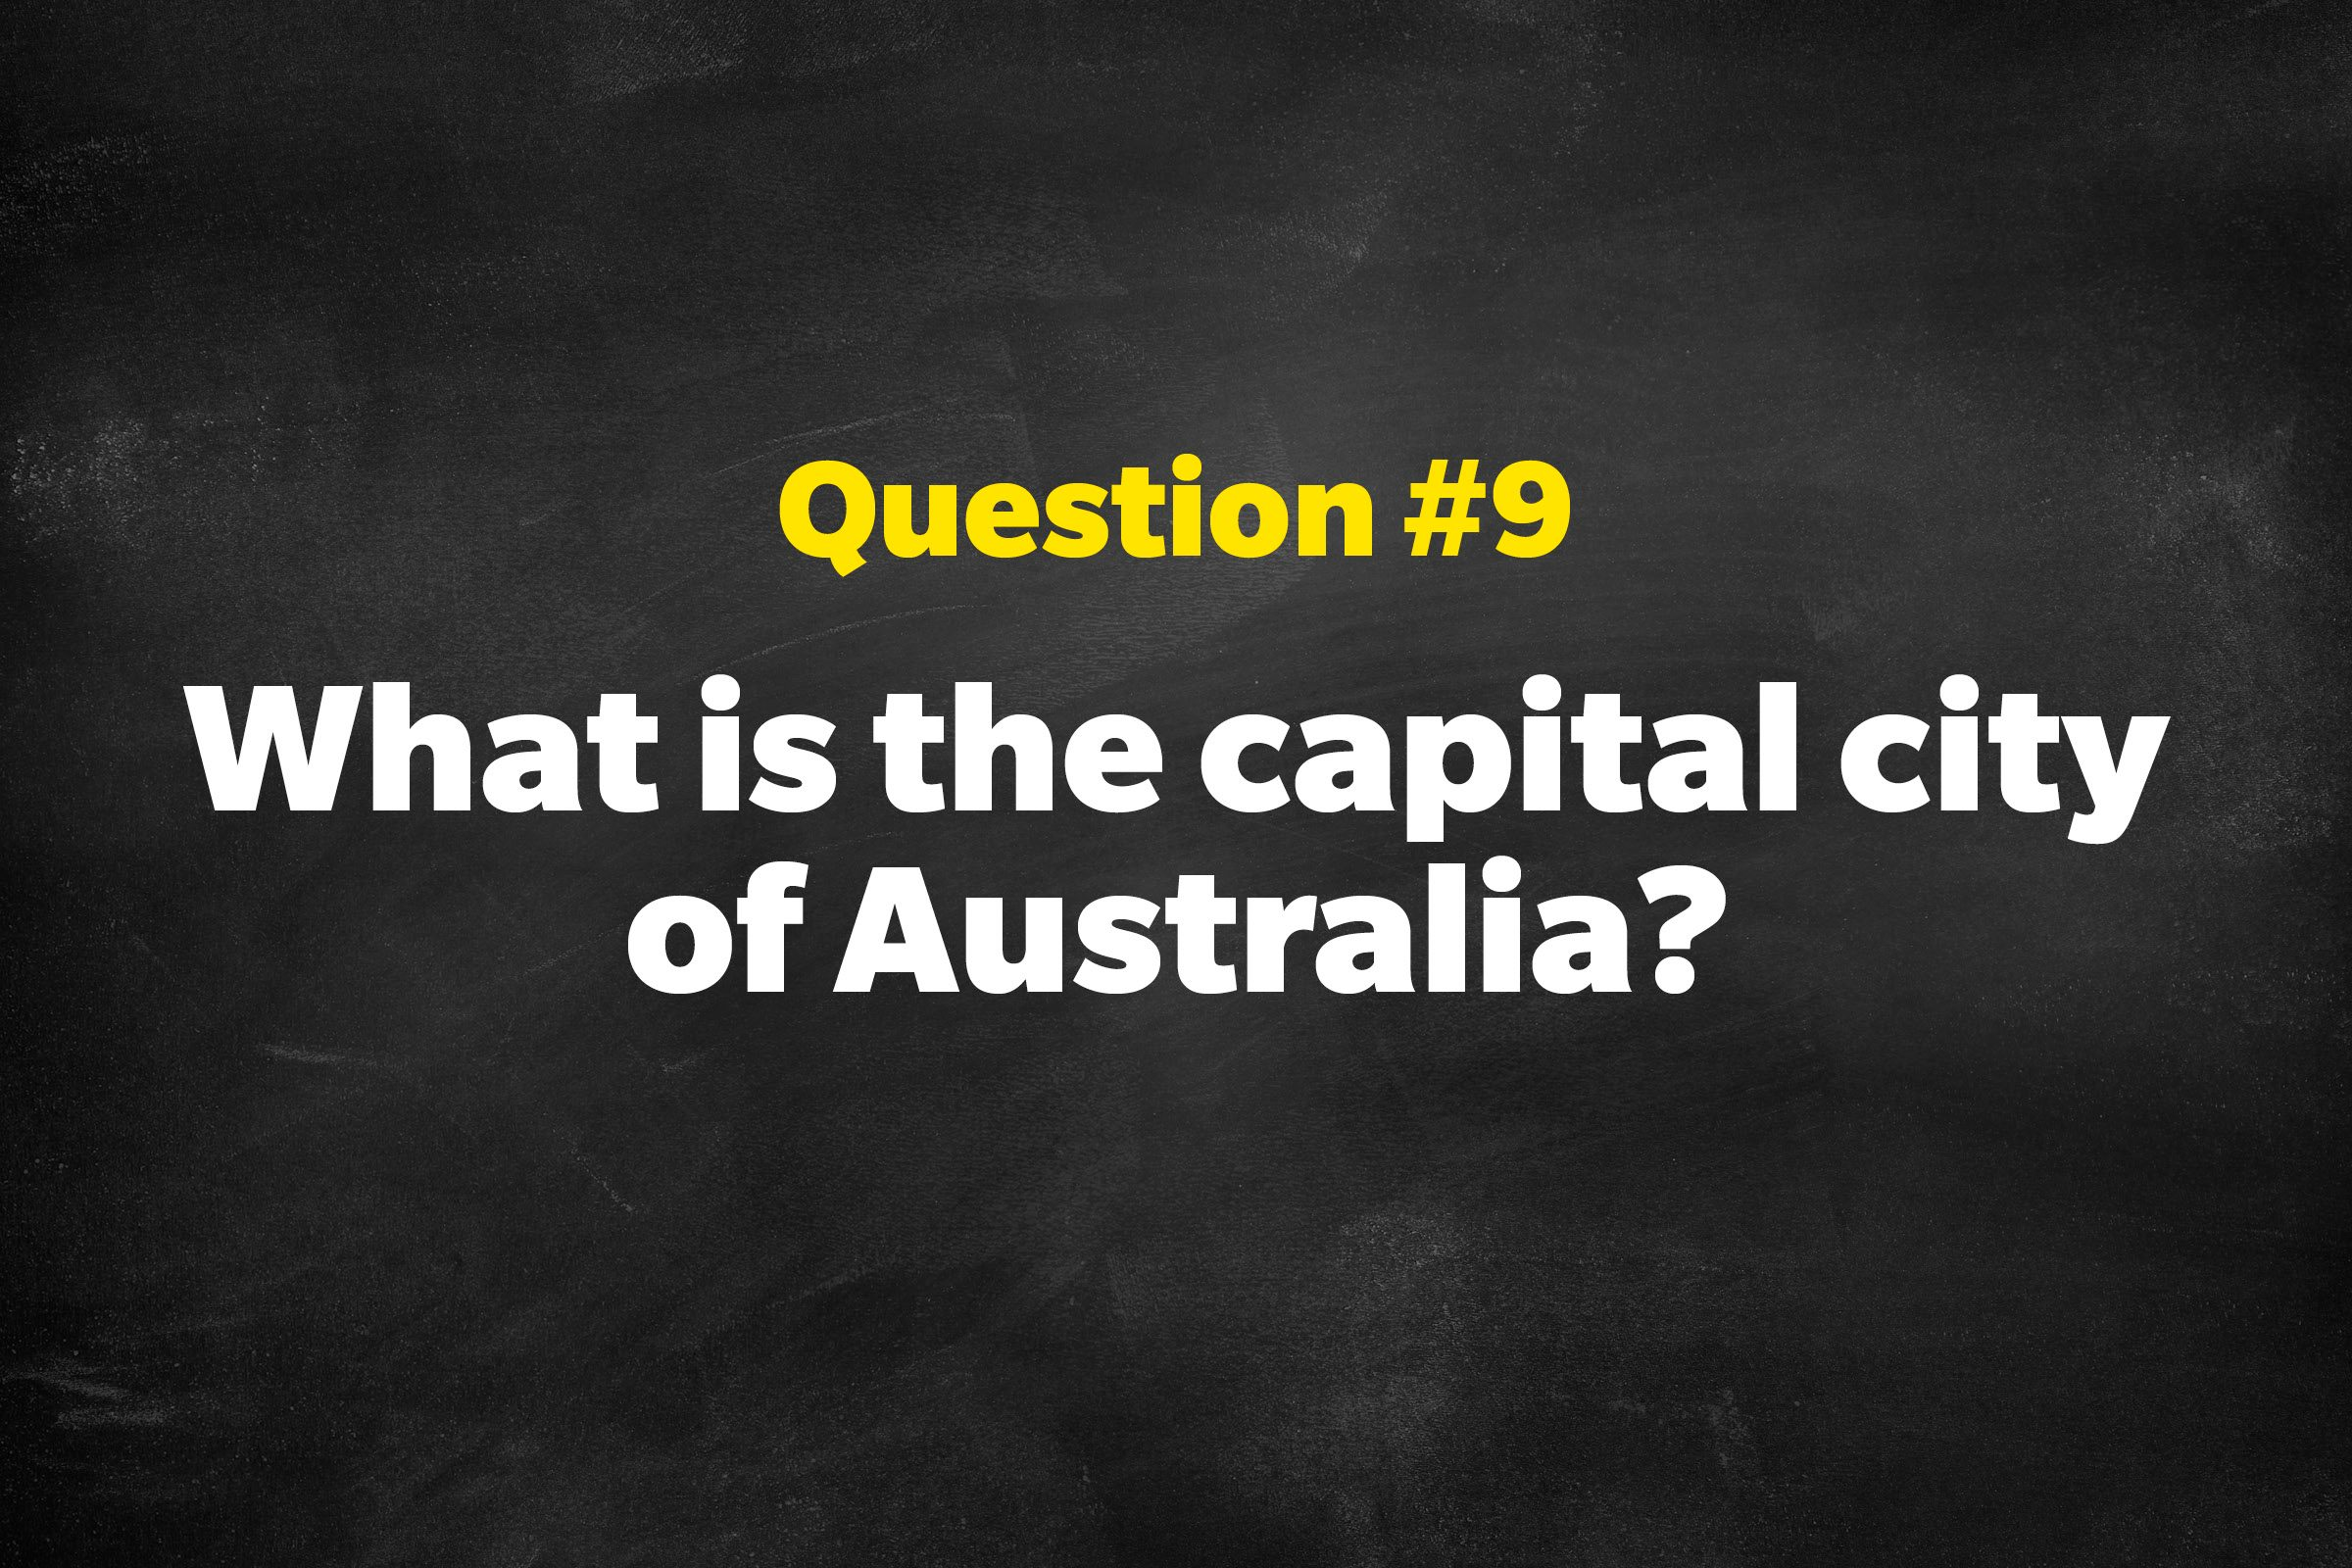 Question #9: What is the capital city of Australia?